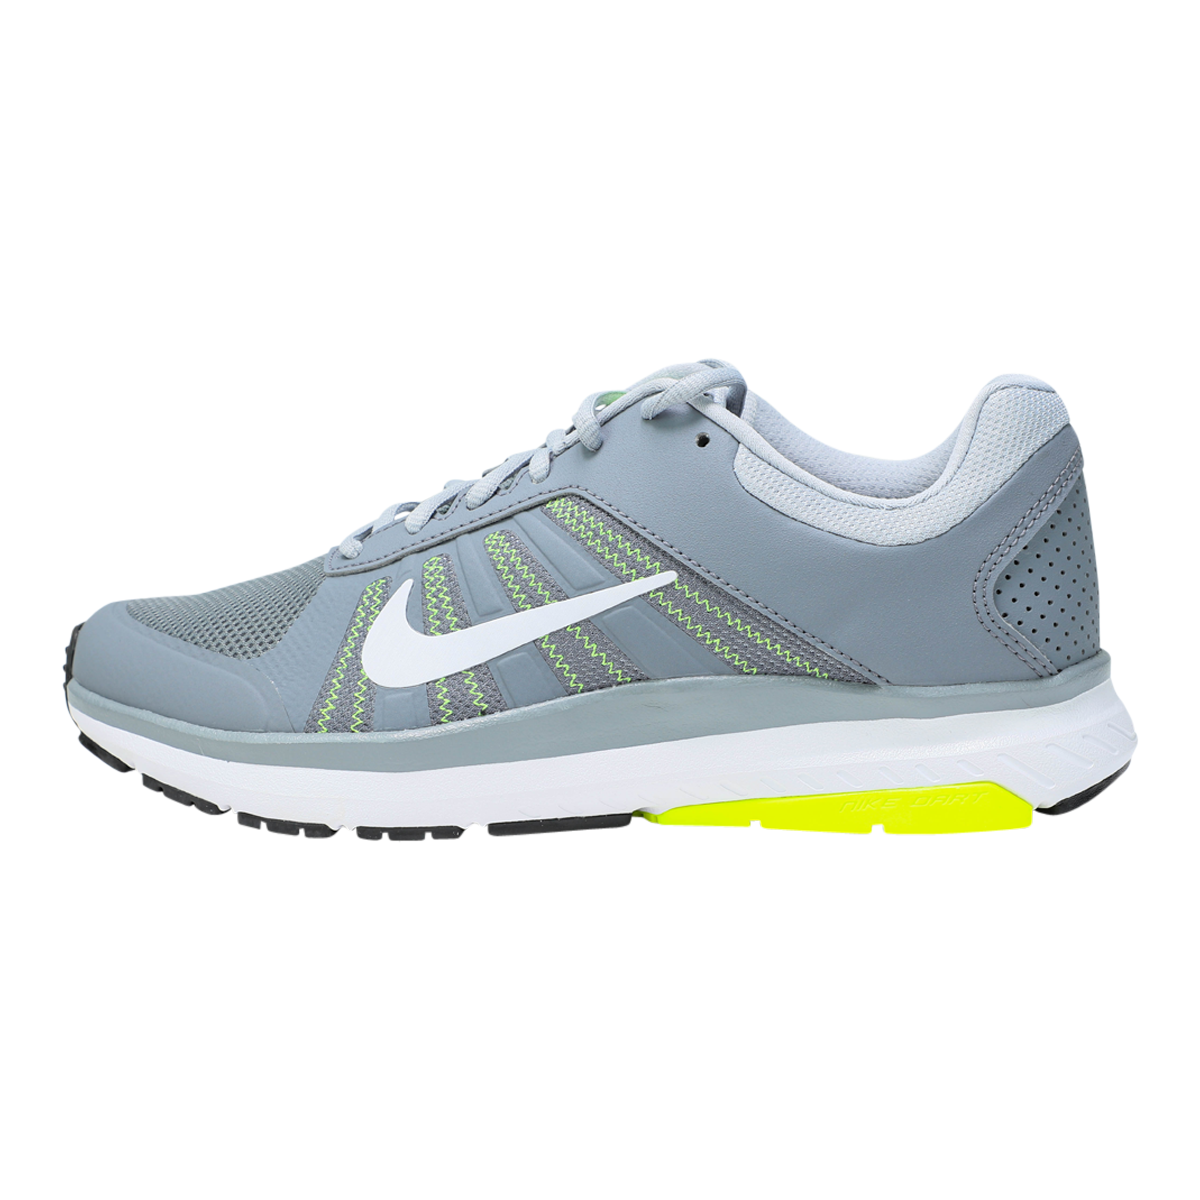 Nike-Men-039-s-Dart-12-MSL-Running-Shoes thumbnail 22